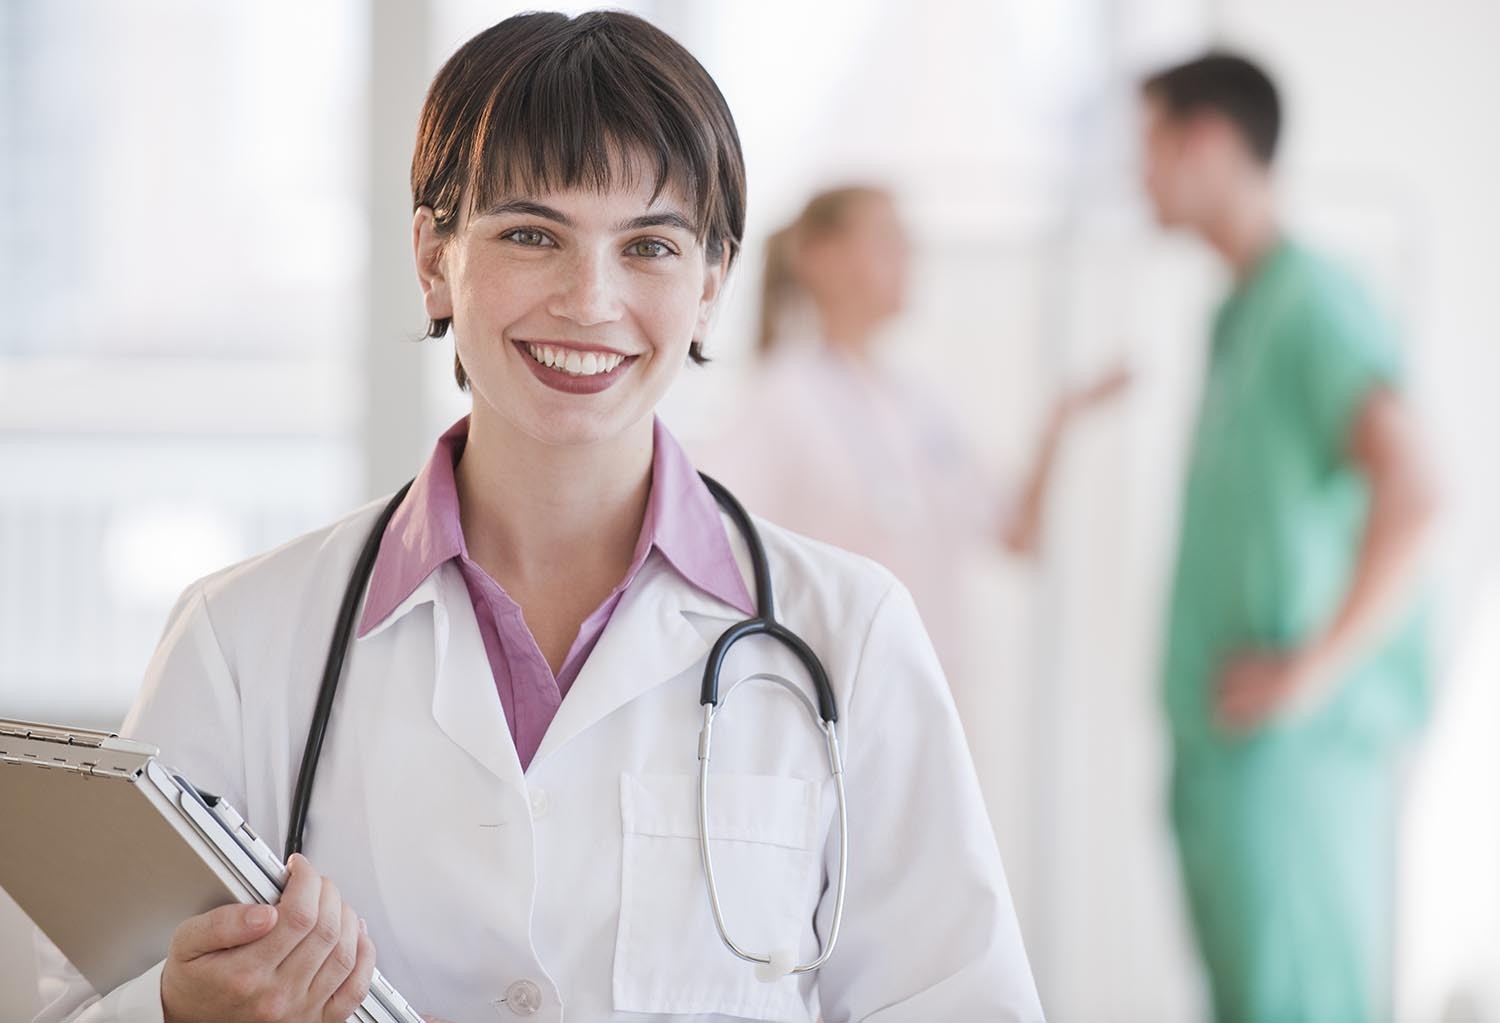 Free stock photo A young female medical professional is smiling at the camera.